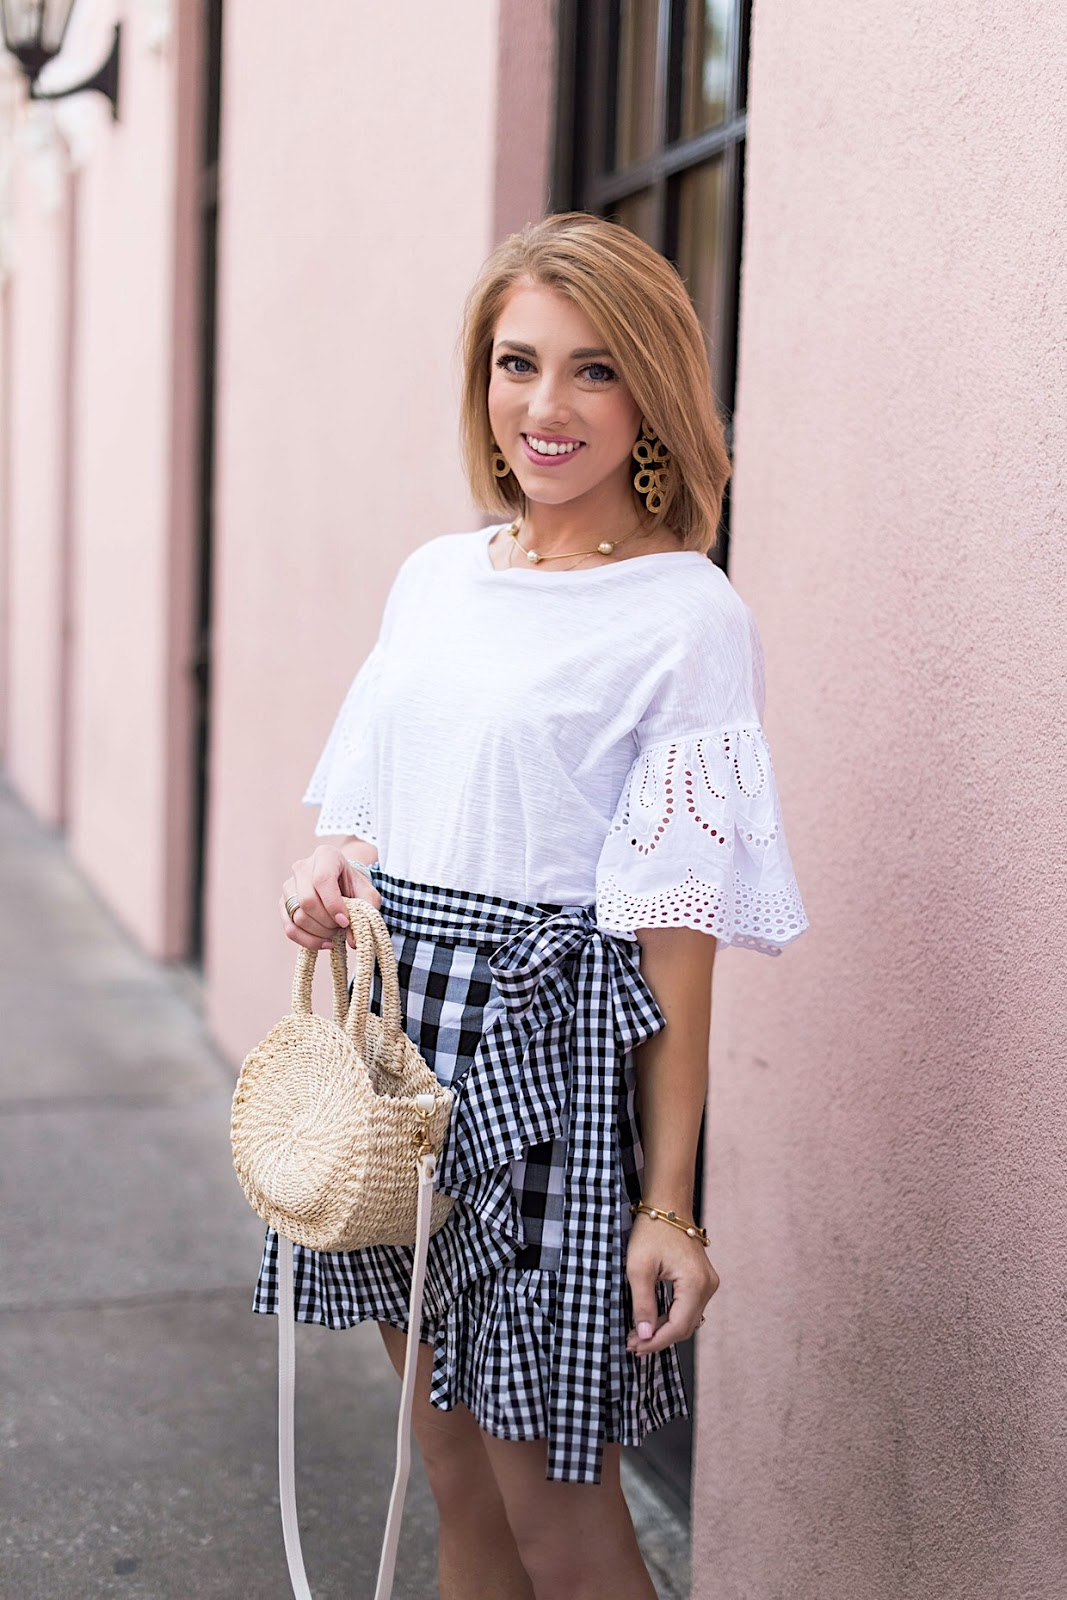 Gingham Wrap Skirt in Charleston, SC. - Something Delightful Blog